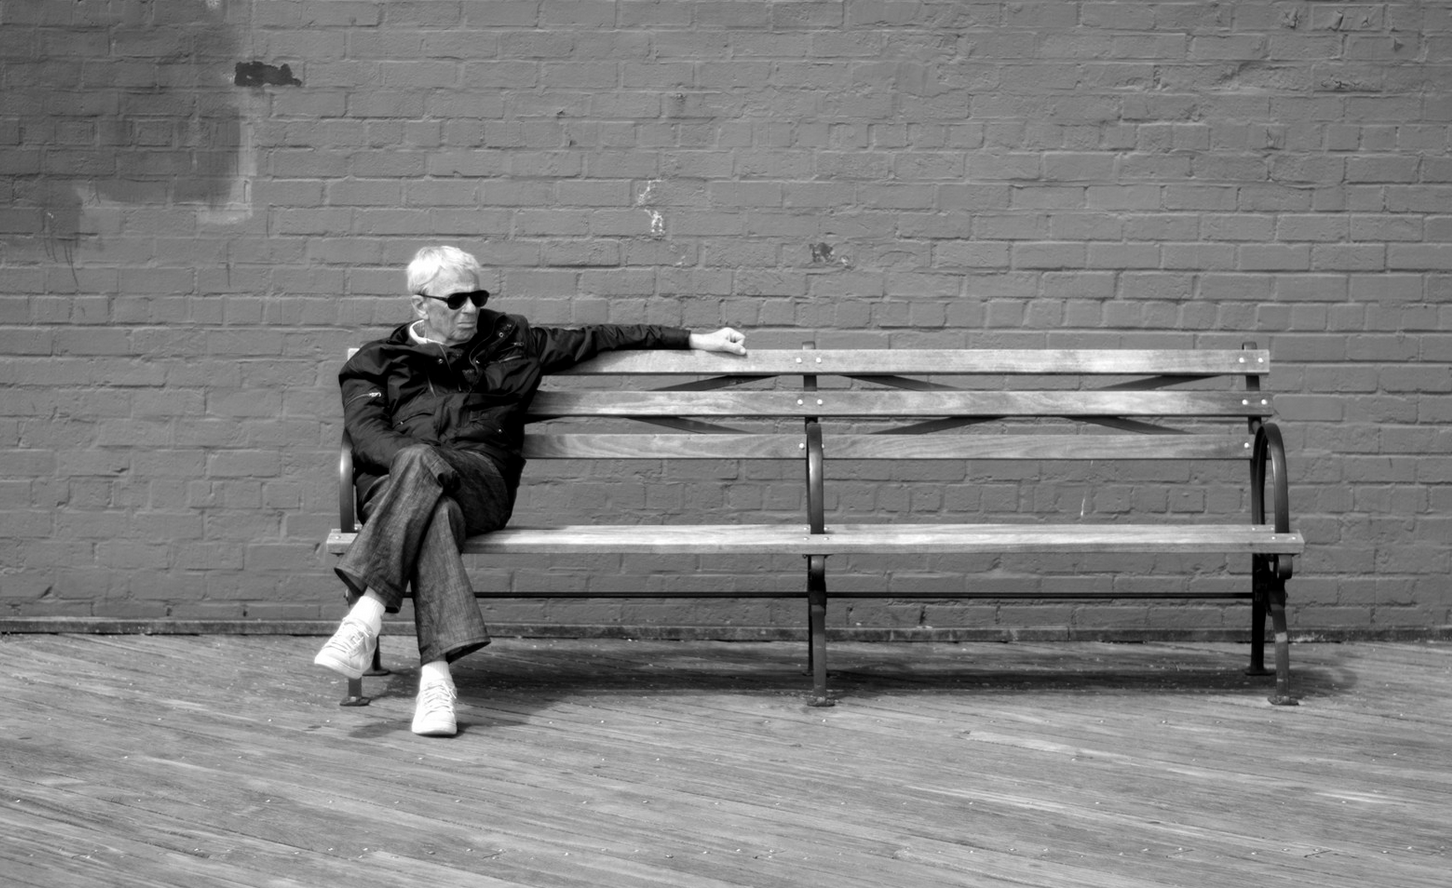 a man sitting on the edge of a bench